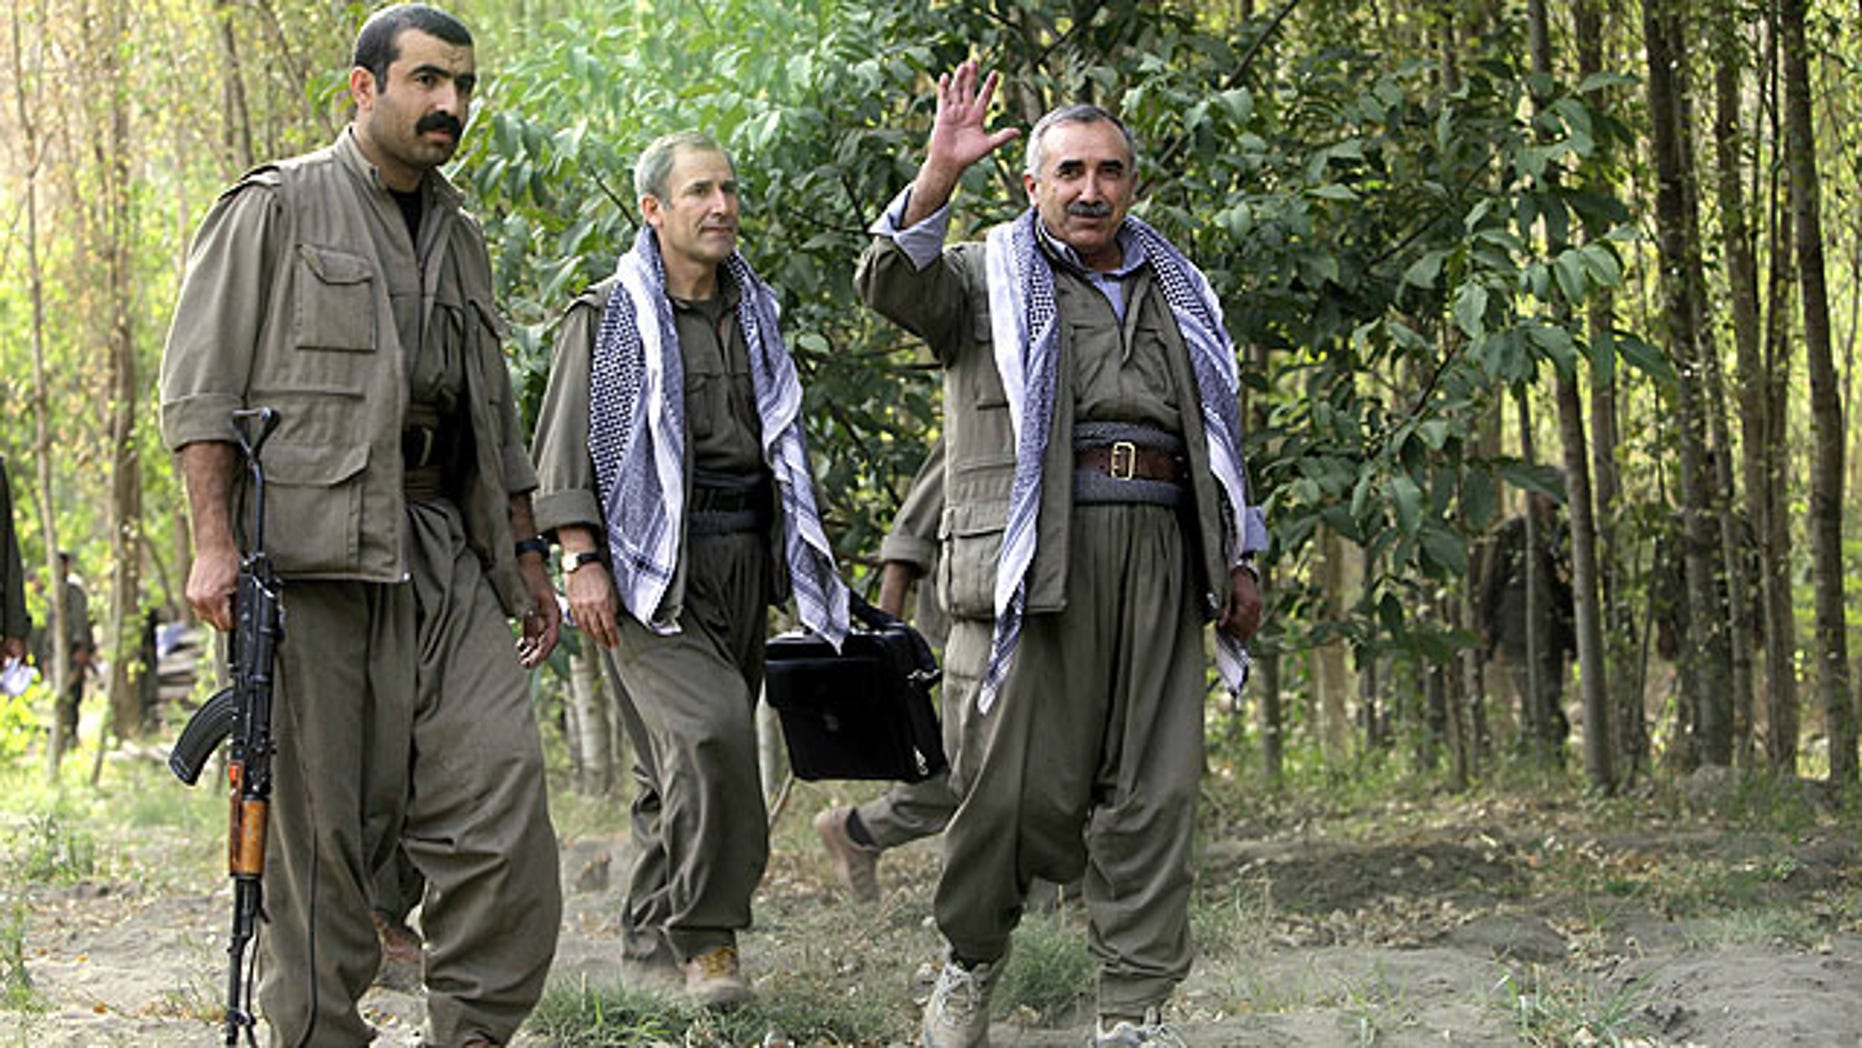 Sept. 30, 2010: Murad Karialan, right, and Bouzan Teken, center, of the Kurdistan Workers' Party, or PKK, speaks to the press in the Qandil mountain range, northern Iraq.